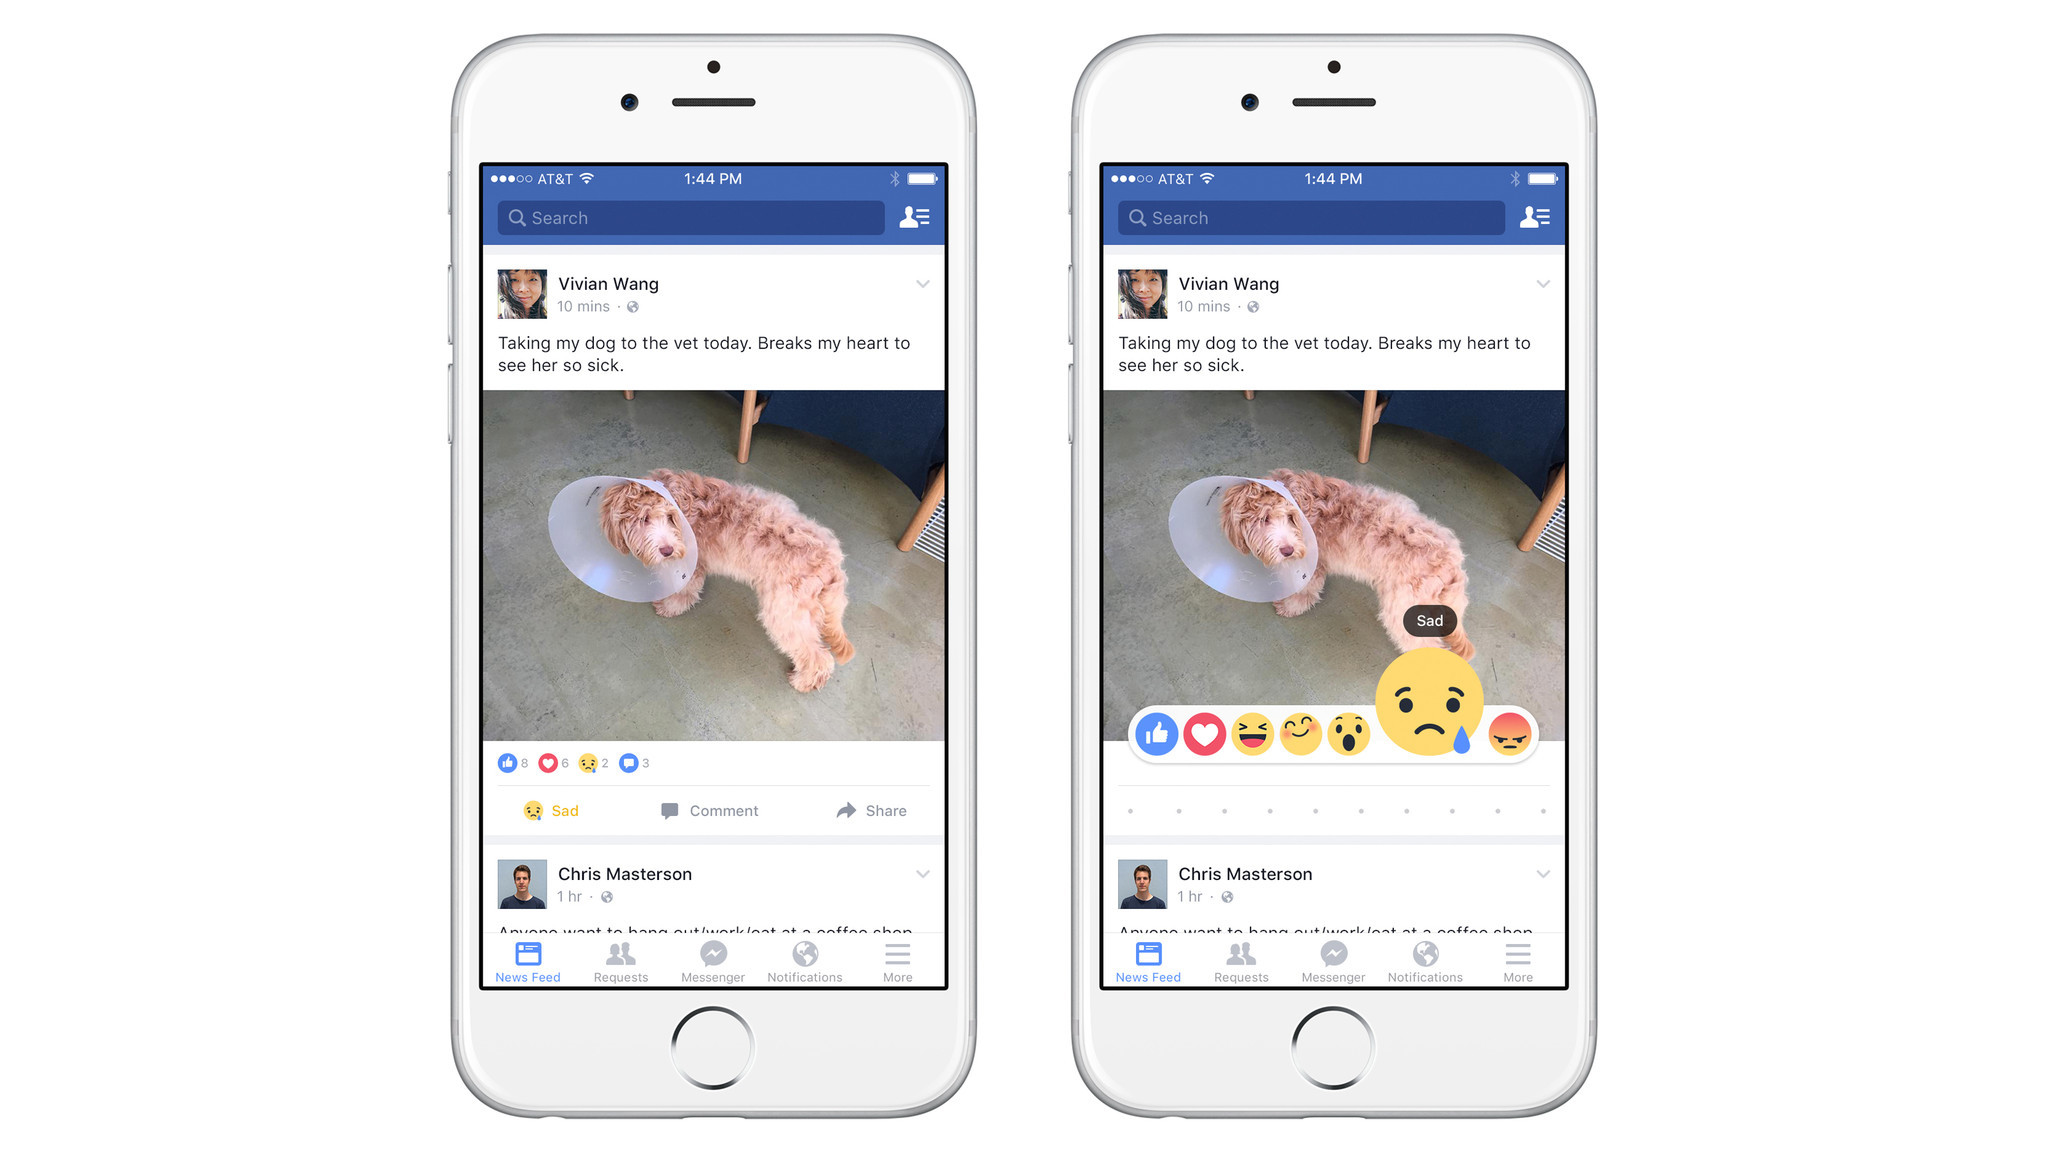 Facebook's news feed and the tyranny of 'positive' content